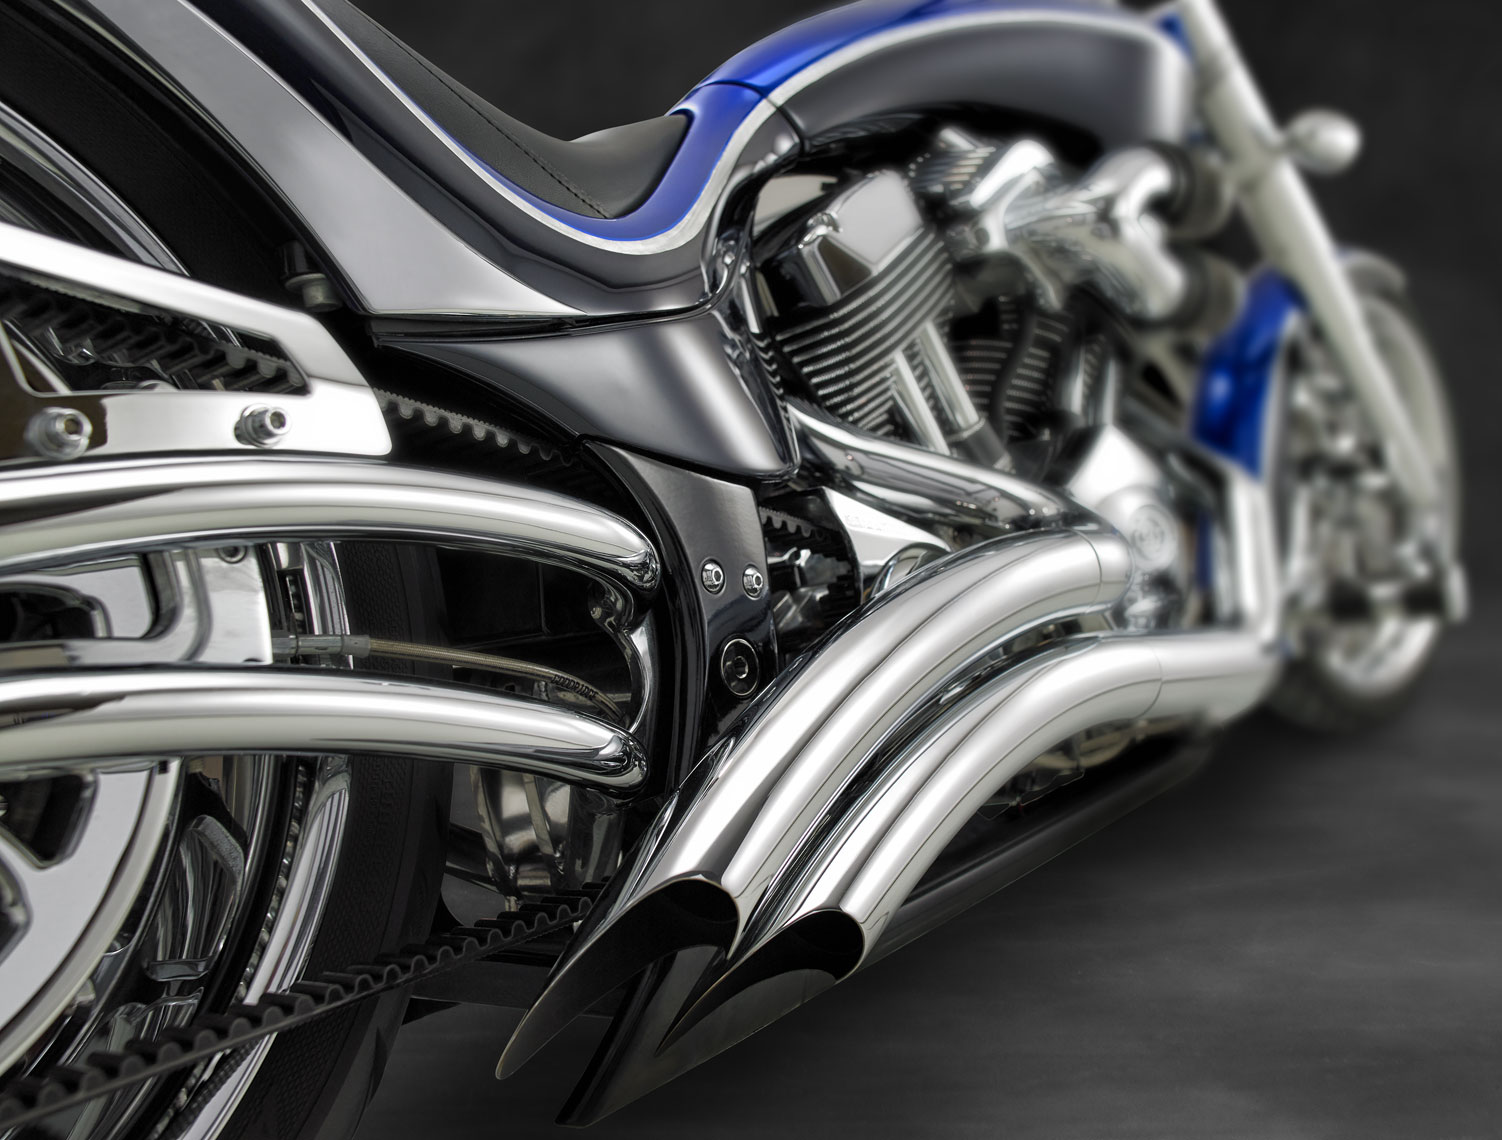 Chopper/back/chrome/cycle photography